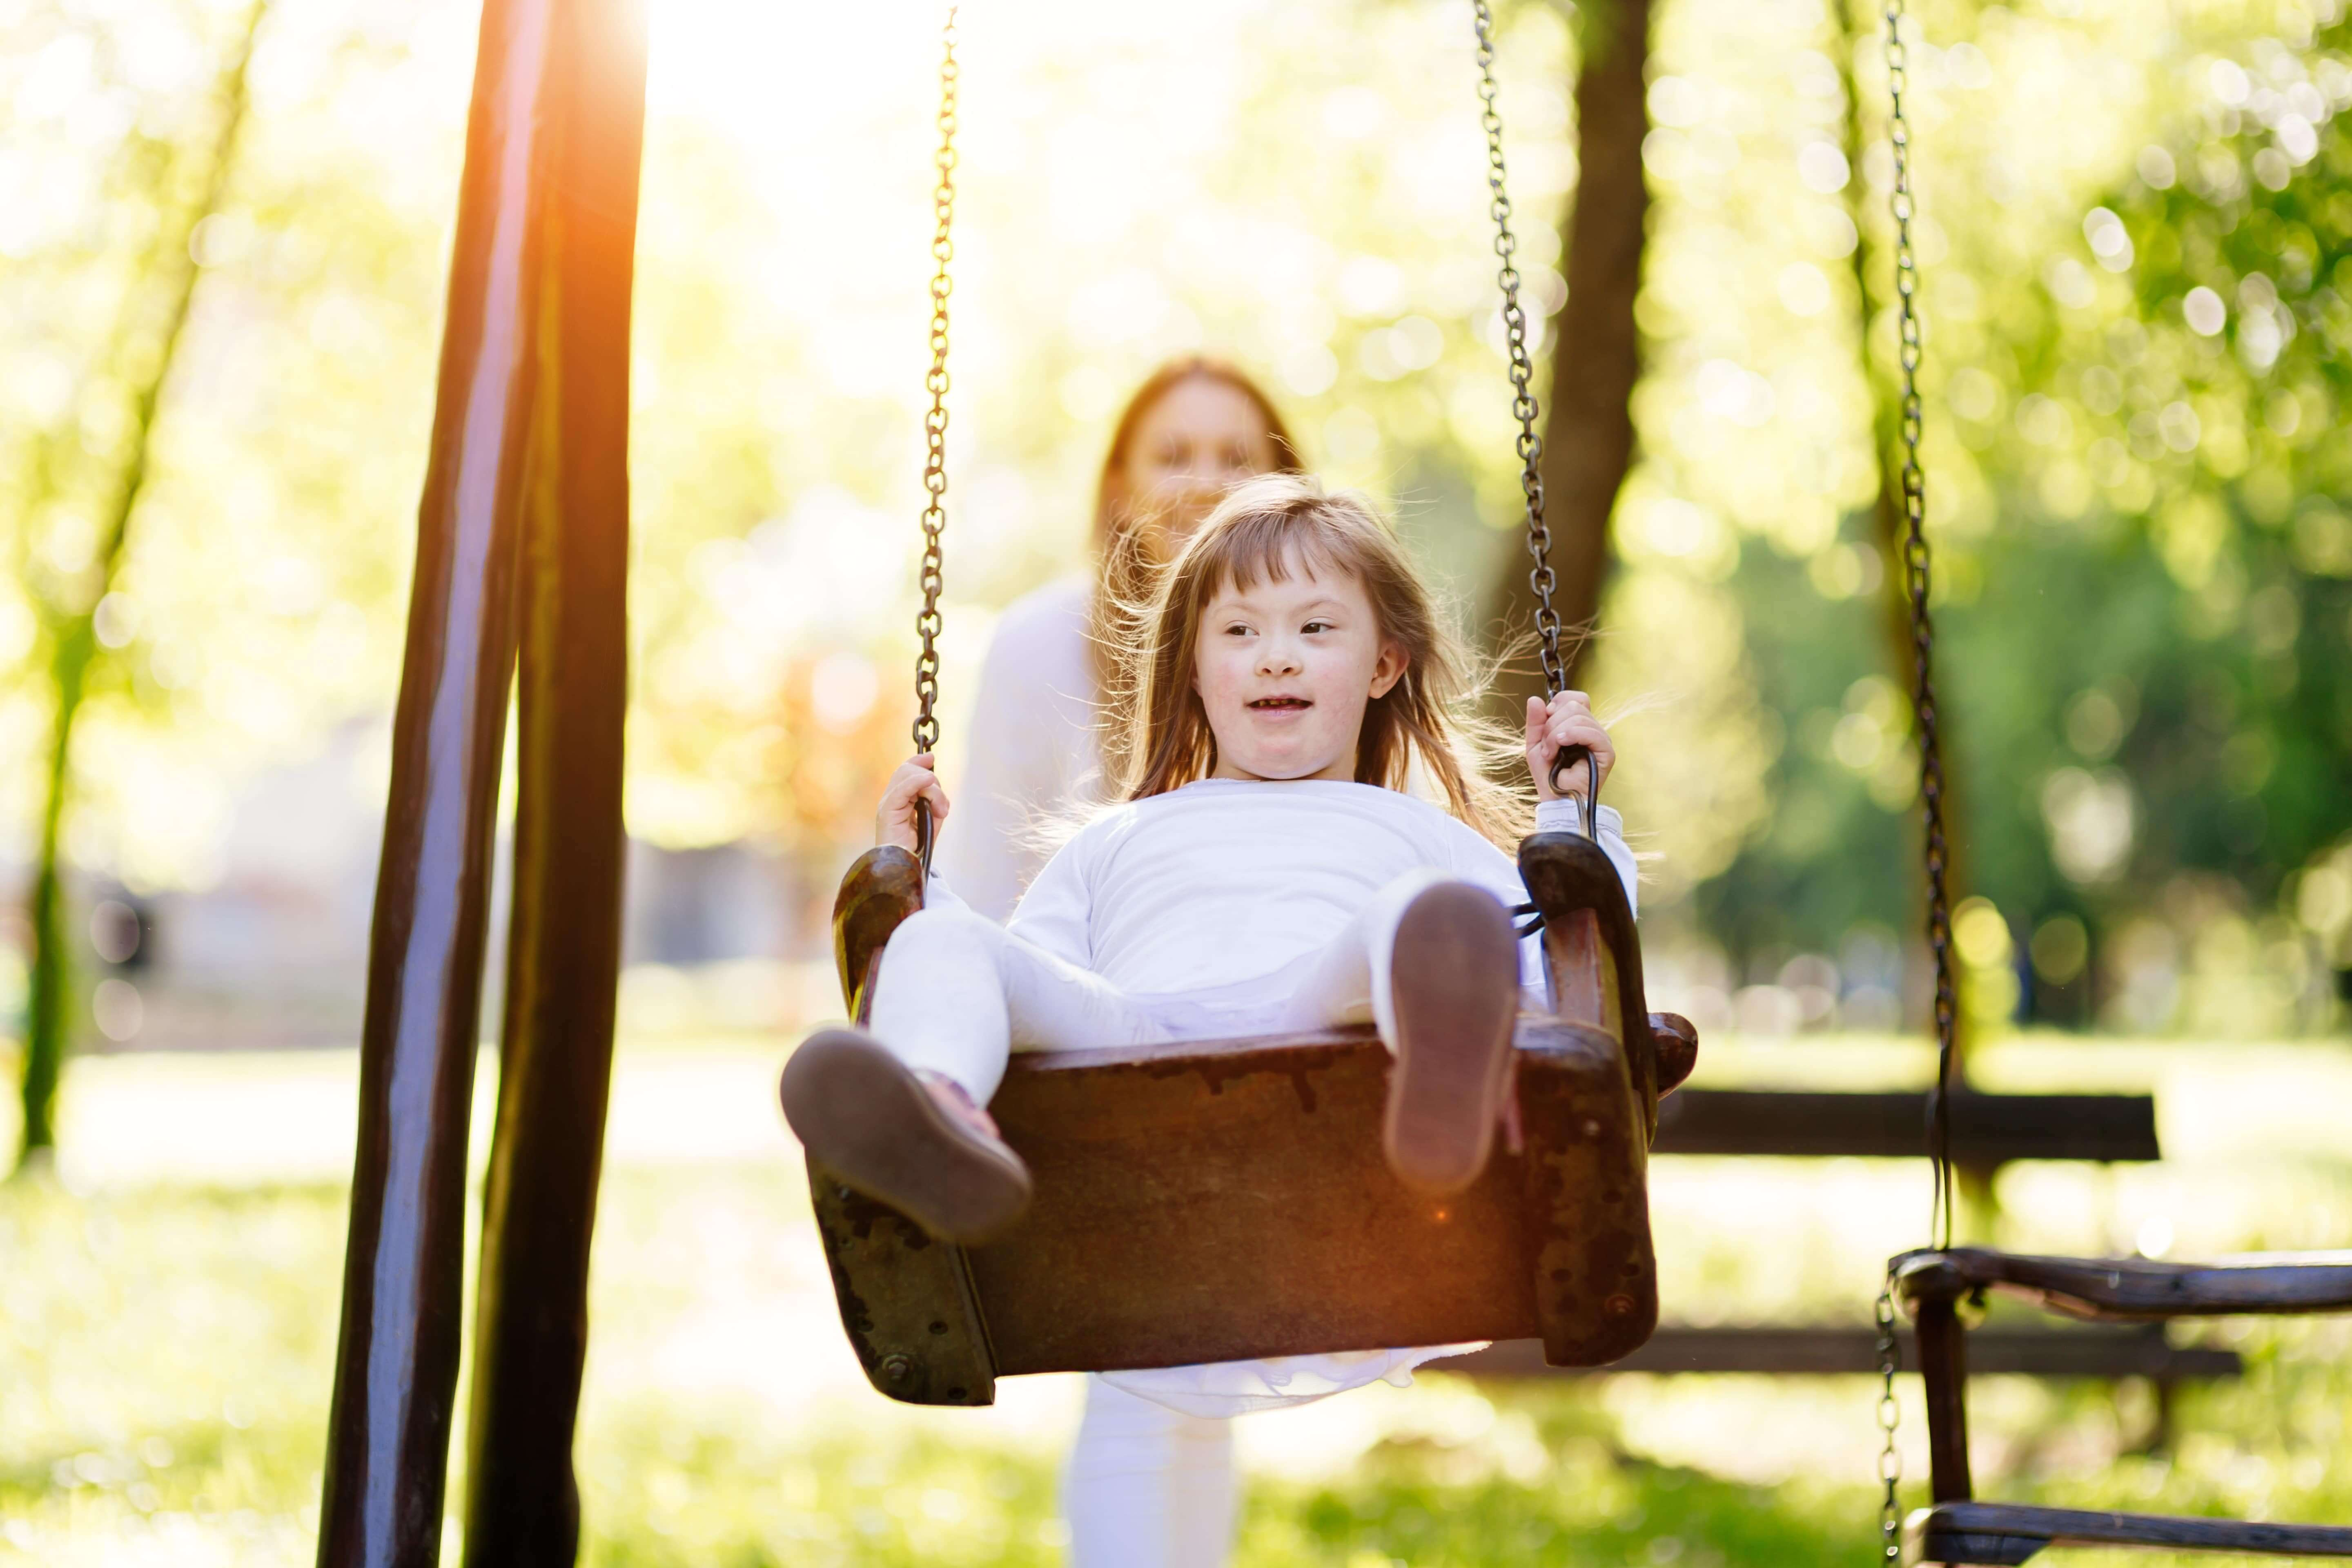 A young girl with Downs Syndrome playing on a swing